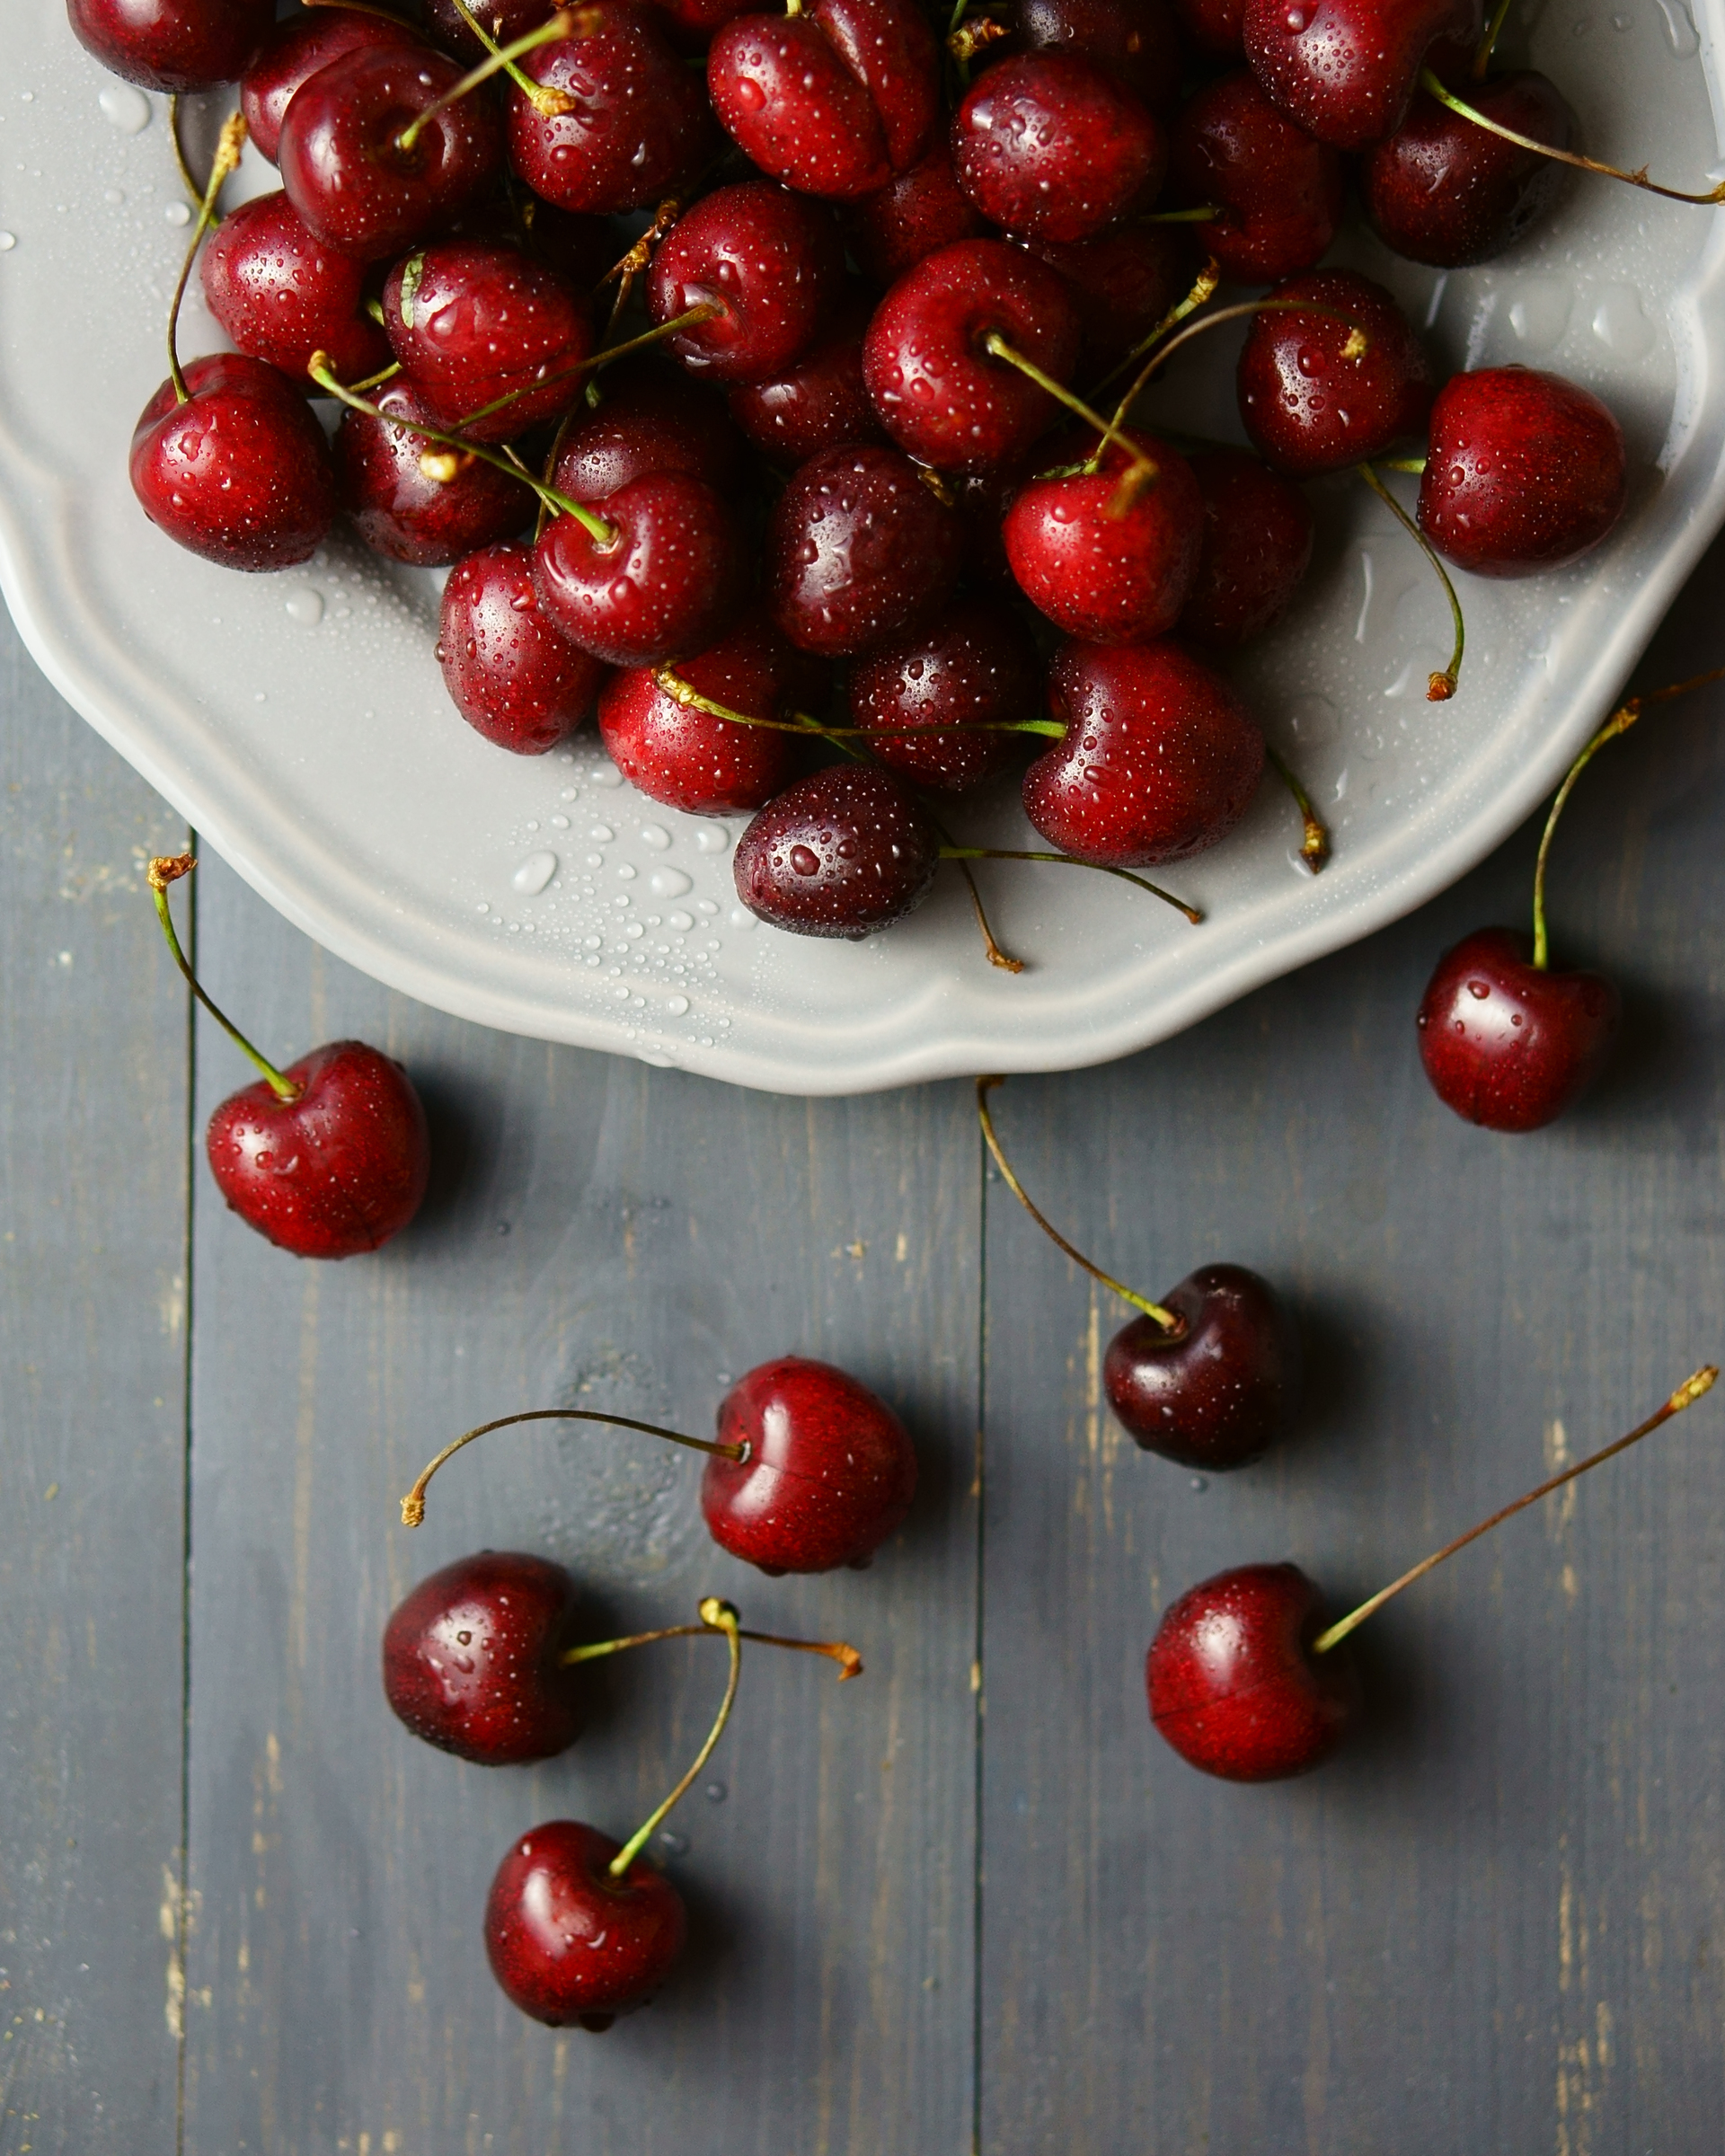 Cherries in the plate | berry, cherry, food, fruit